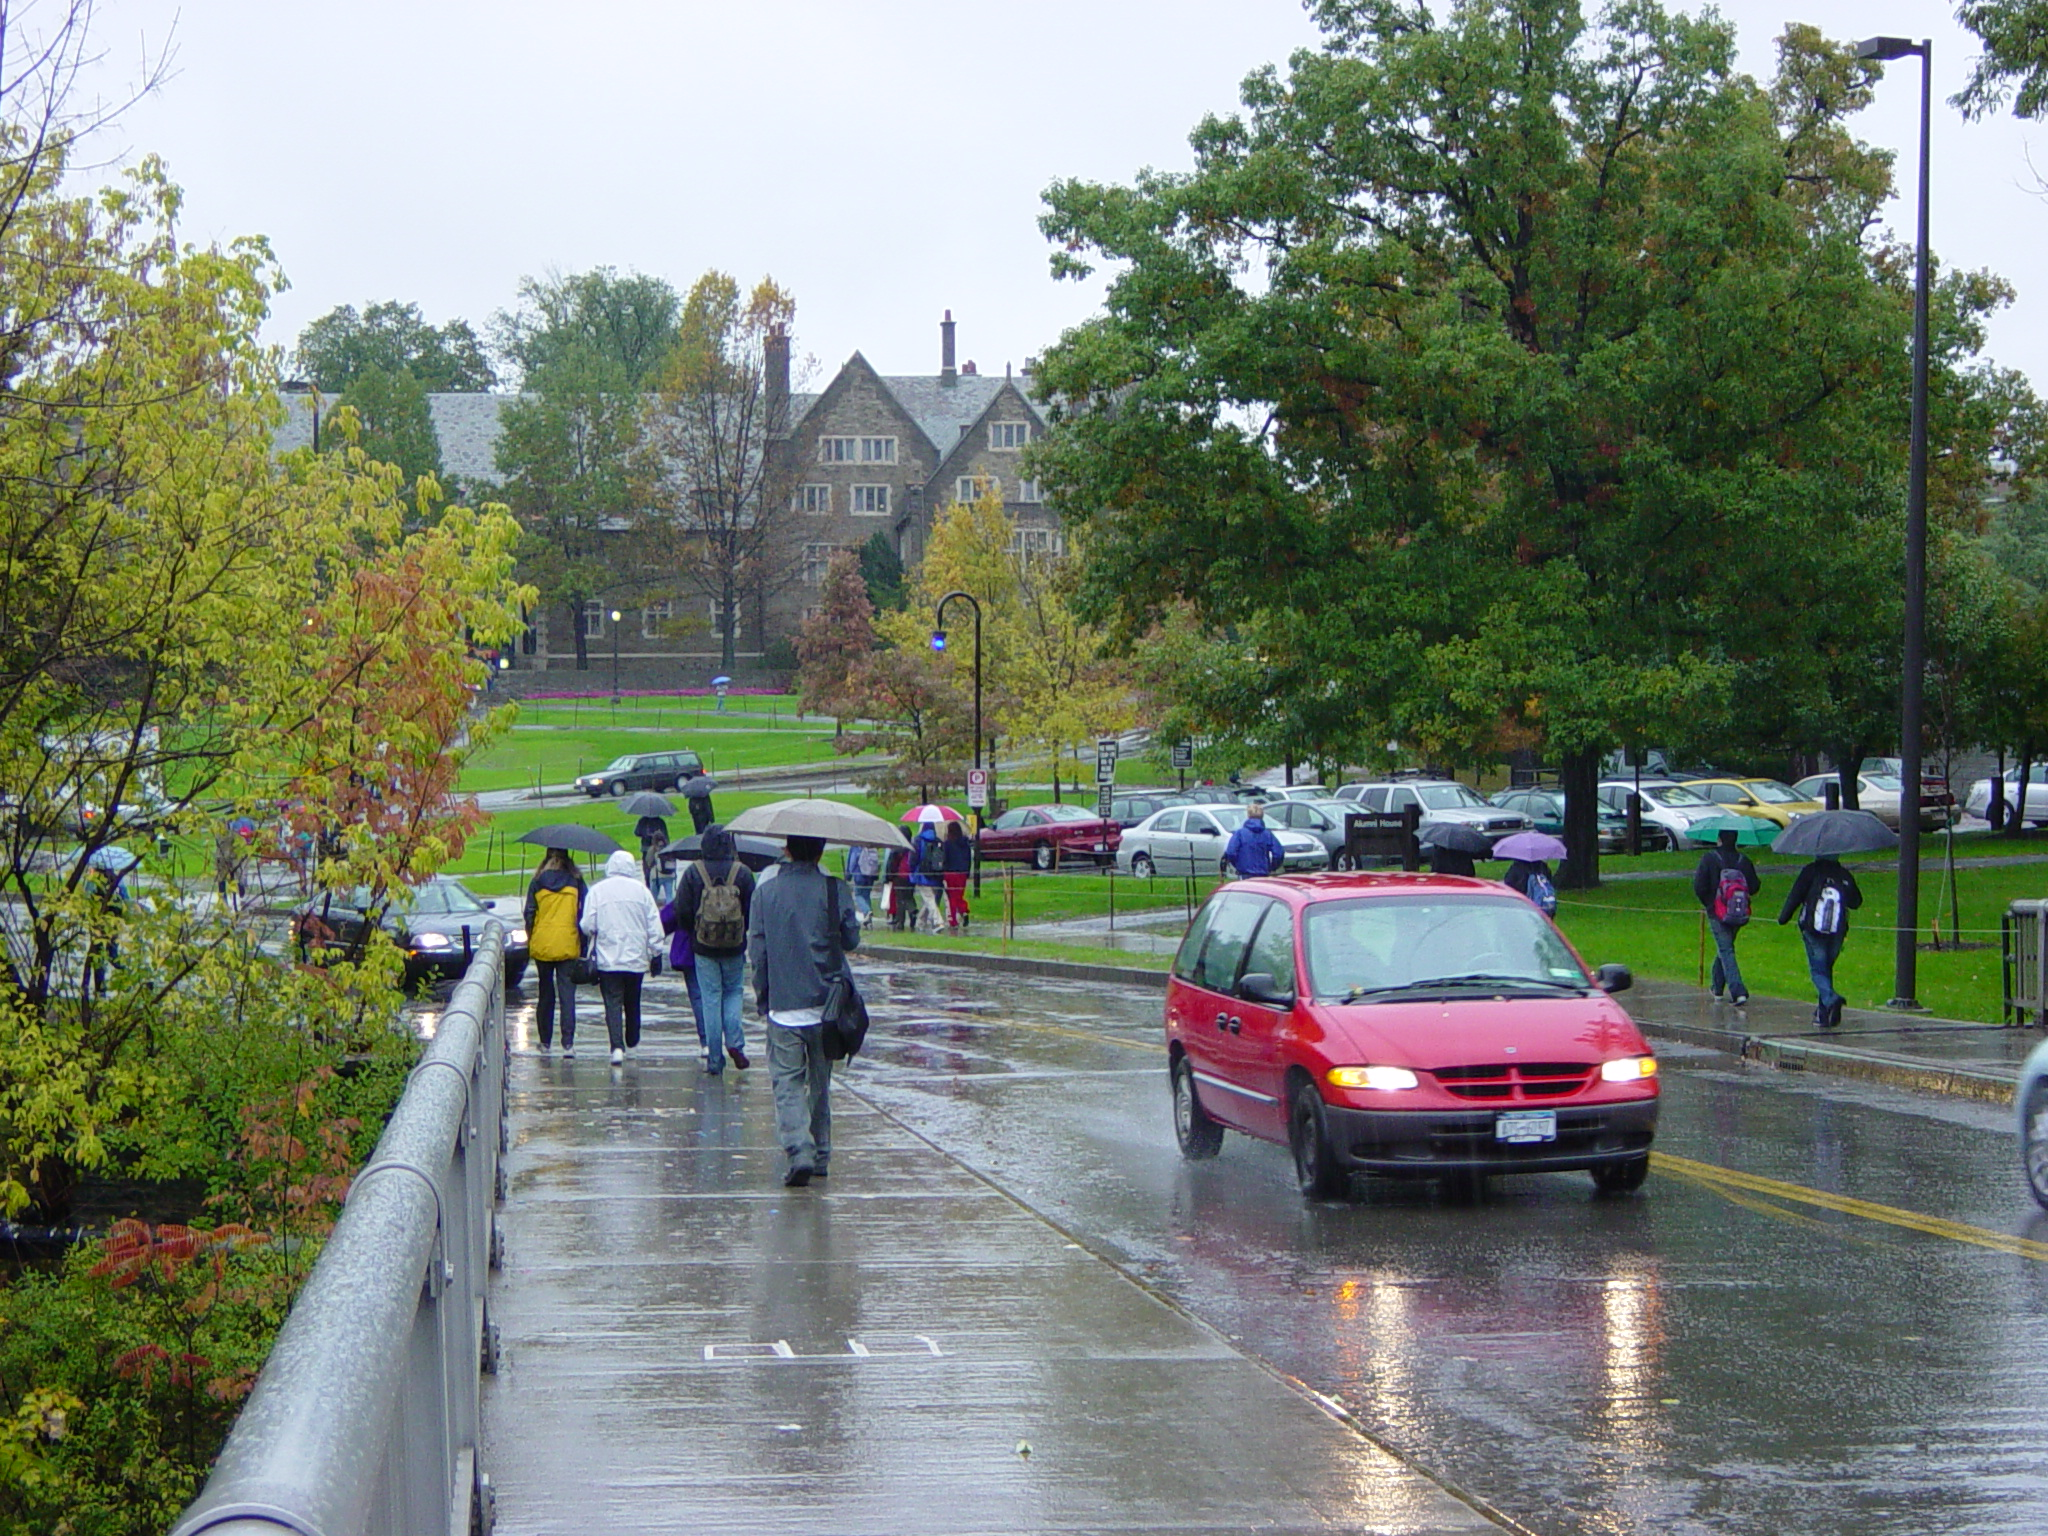 Cornell_rainy_north_campus_from_bridge-vf7v32